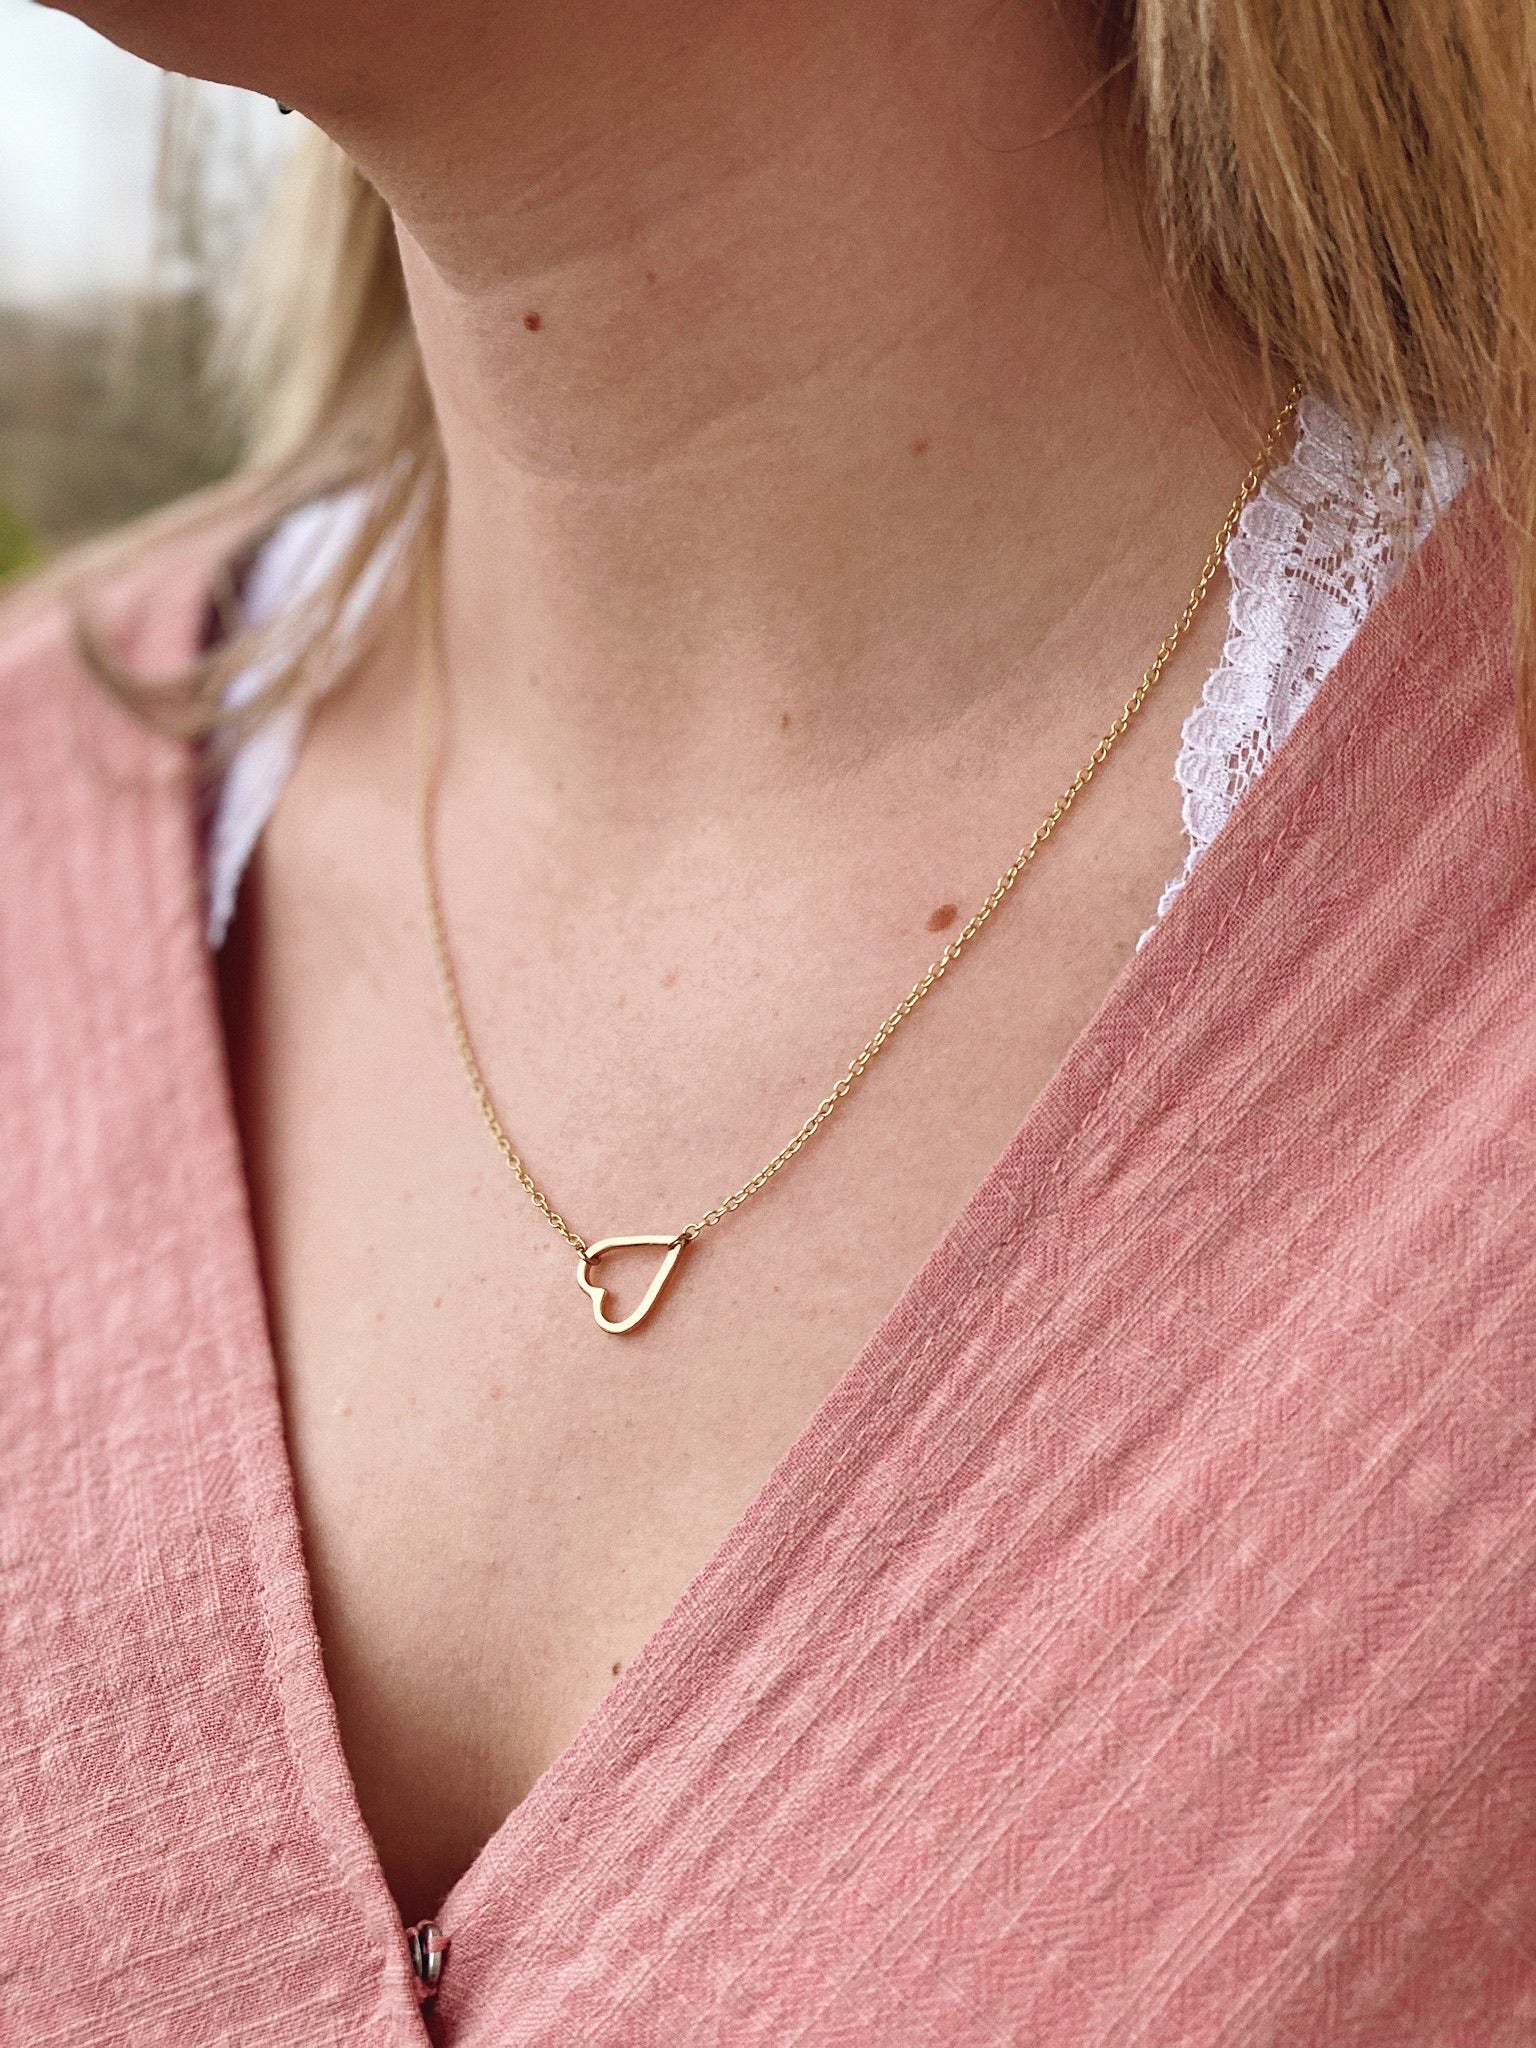 The Sideways Heart Necklace